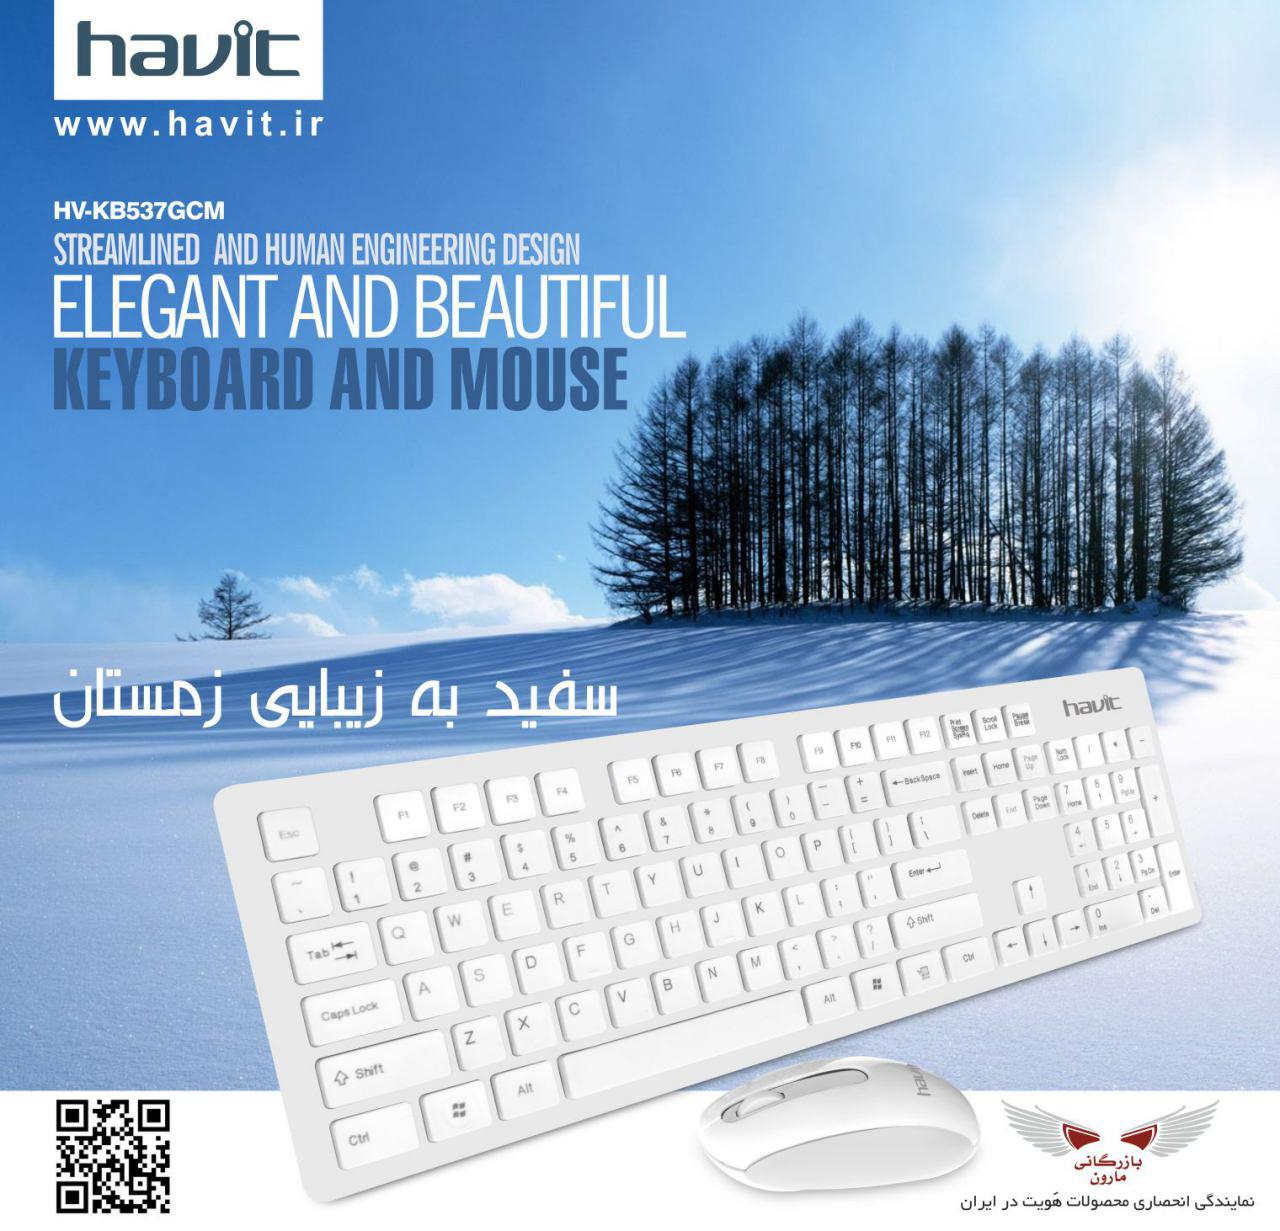 Havit KB537GCM